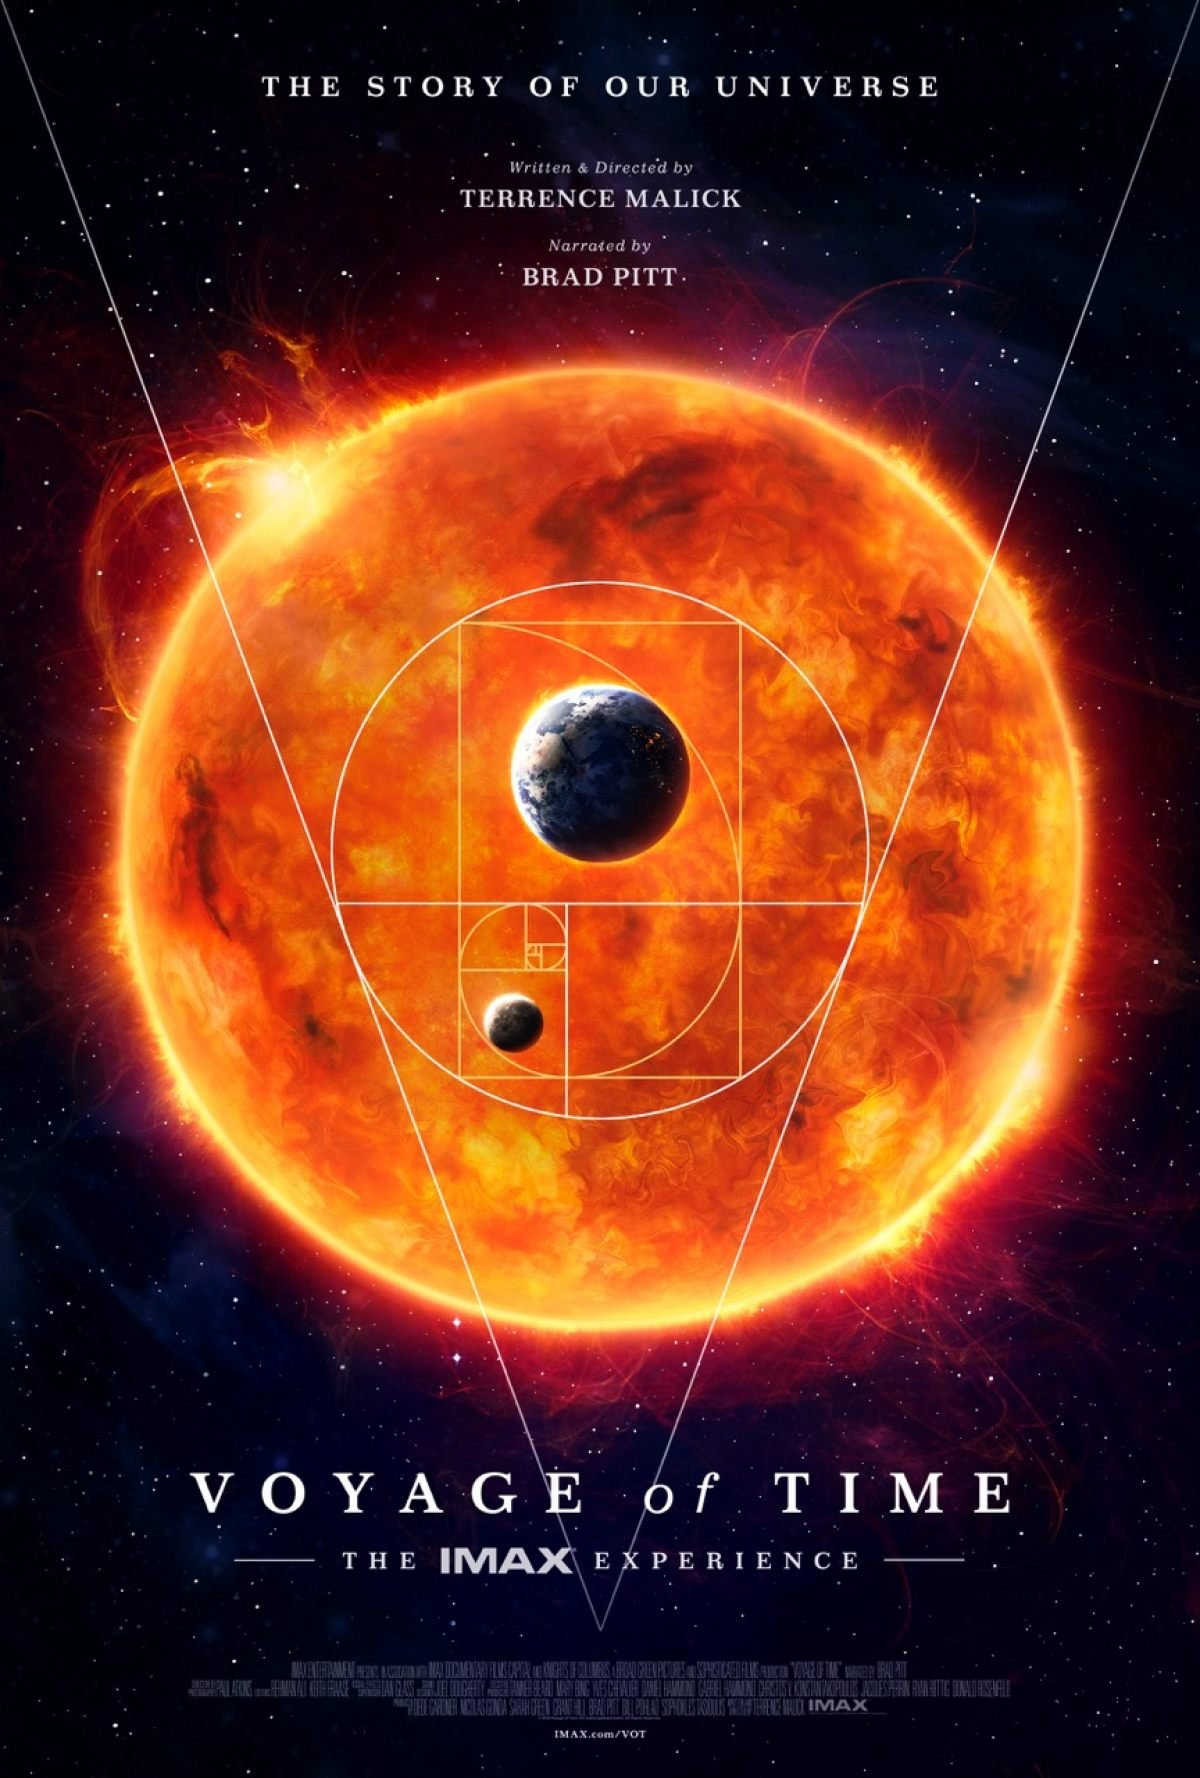 Voyage-Of-Time-Poster_1200_1778_81_s